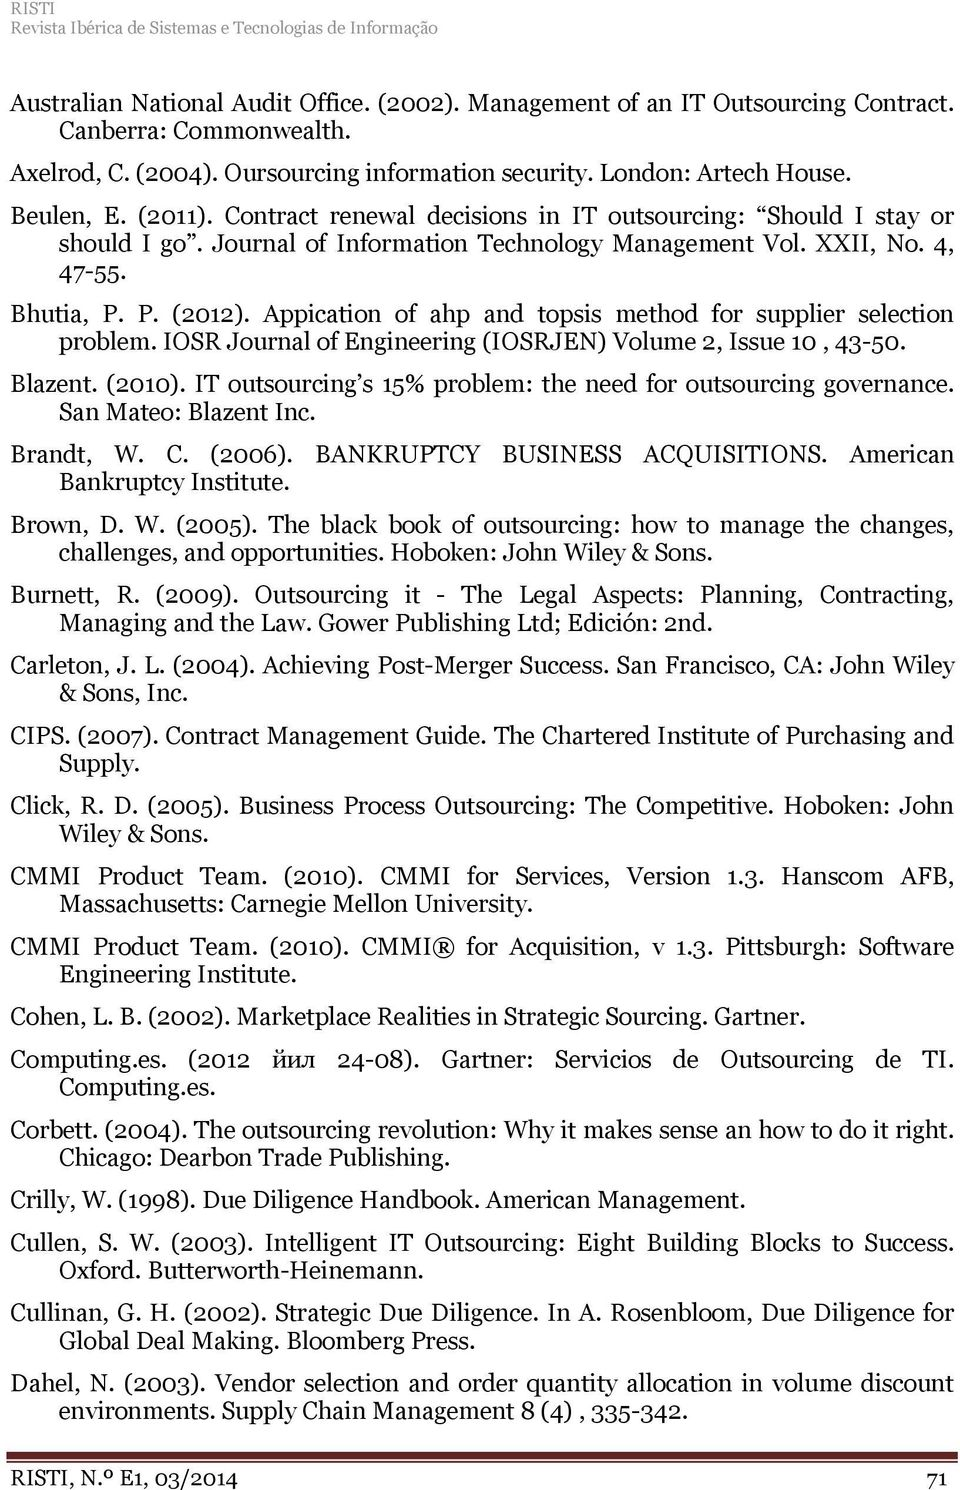 XXII, No. 4, 47-55. Bhutia, P. P. (2012). Appication of ahp and topsis method for supplier selection problem. IOSR Journal of Engineering (IOSRJEN) Volume 2, Issue 10, 43-50. Blazent. (2010).